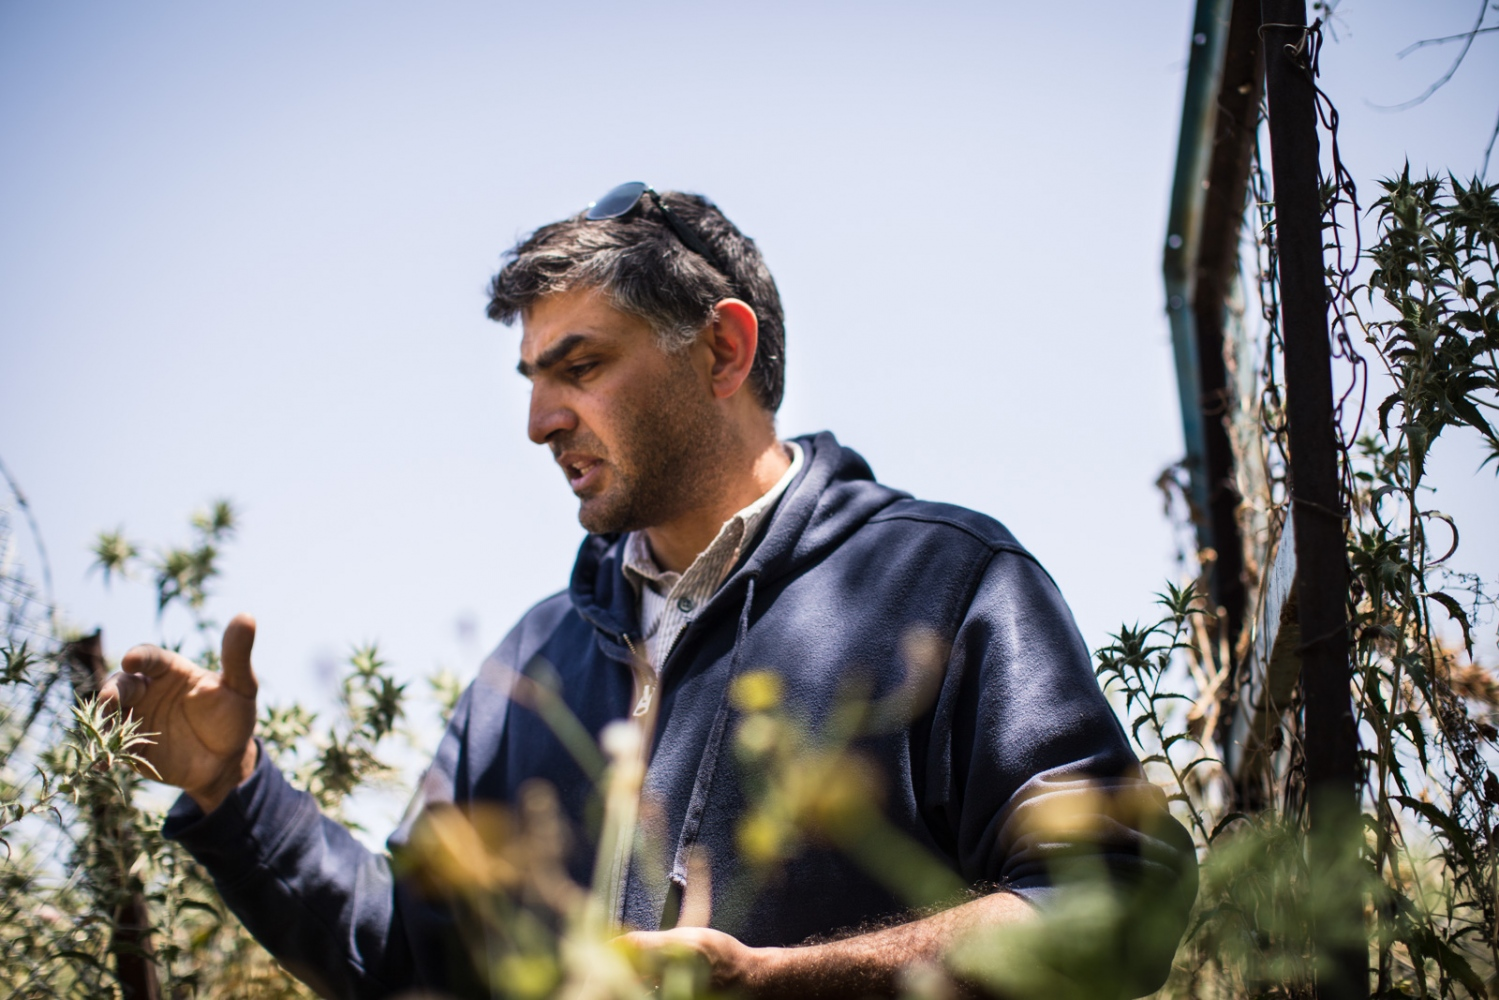 """My father always told me that trees bring rain, but I never understood what he meant until I started this work,"" said Abed Rahman Sultan, park director of the Sharhabil bin Hassneh Eco Park in the Jordan Valley. The park is run by Eco Peace Middle East, which has been critical of the Dead-Red Sea Canal project after conducting environmental feasibility studies."